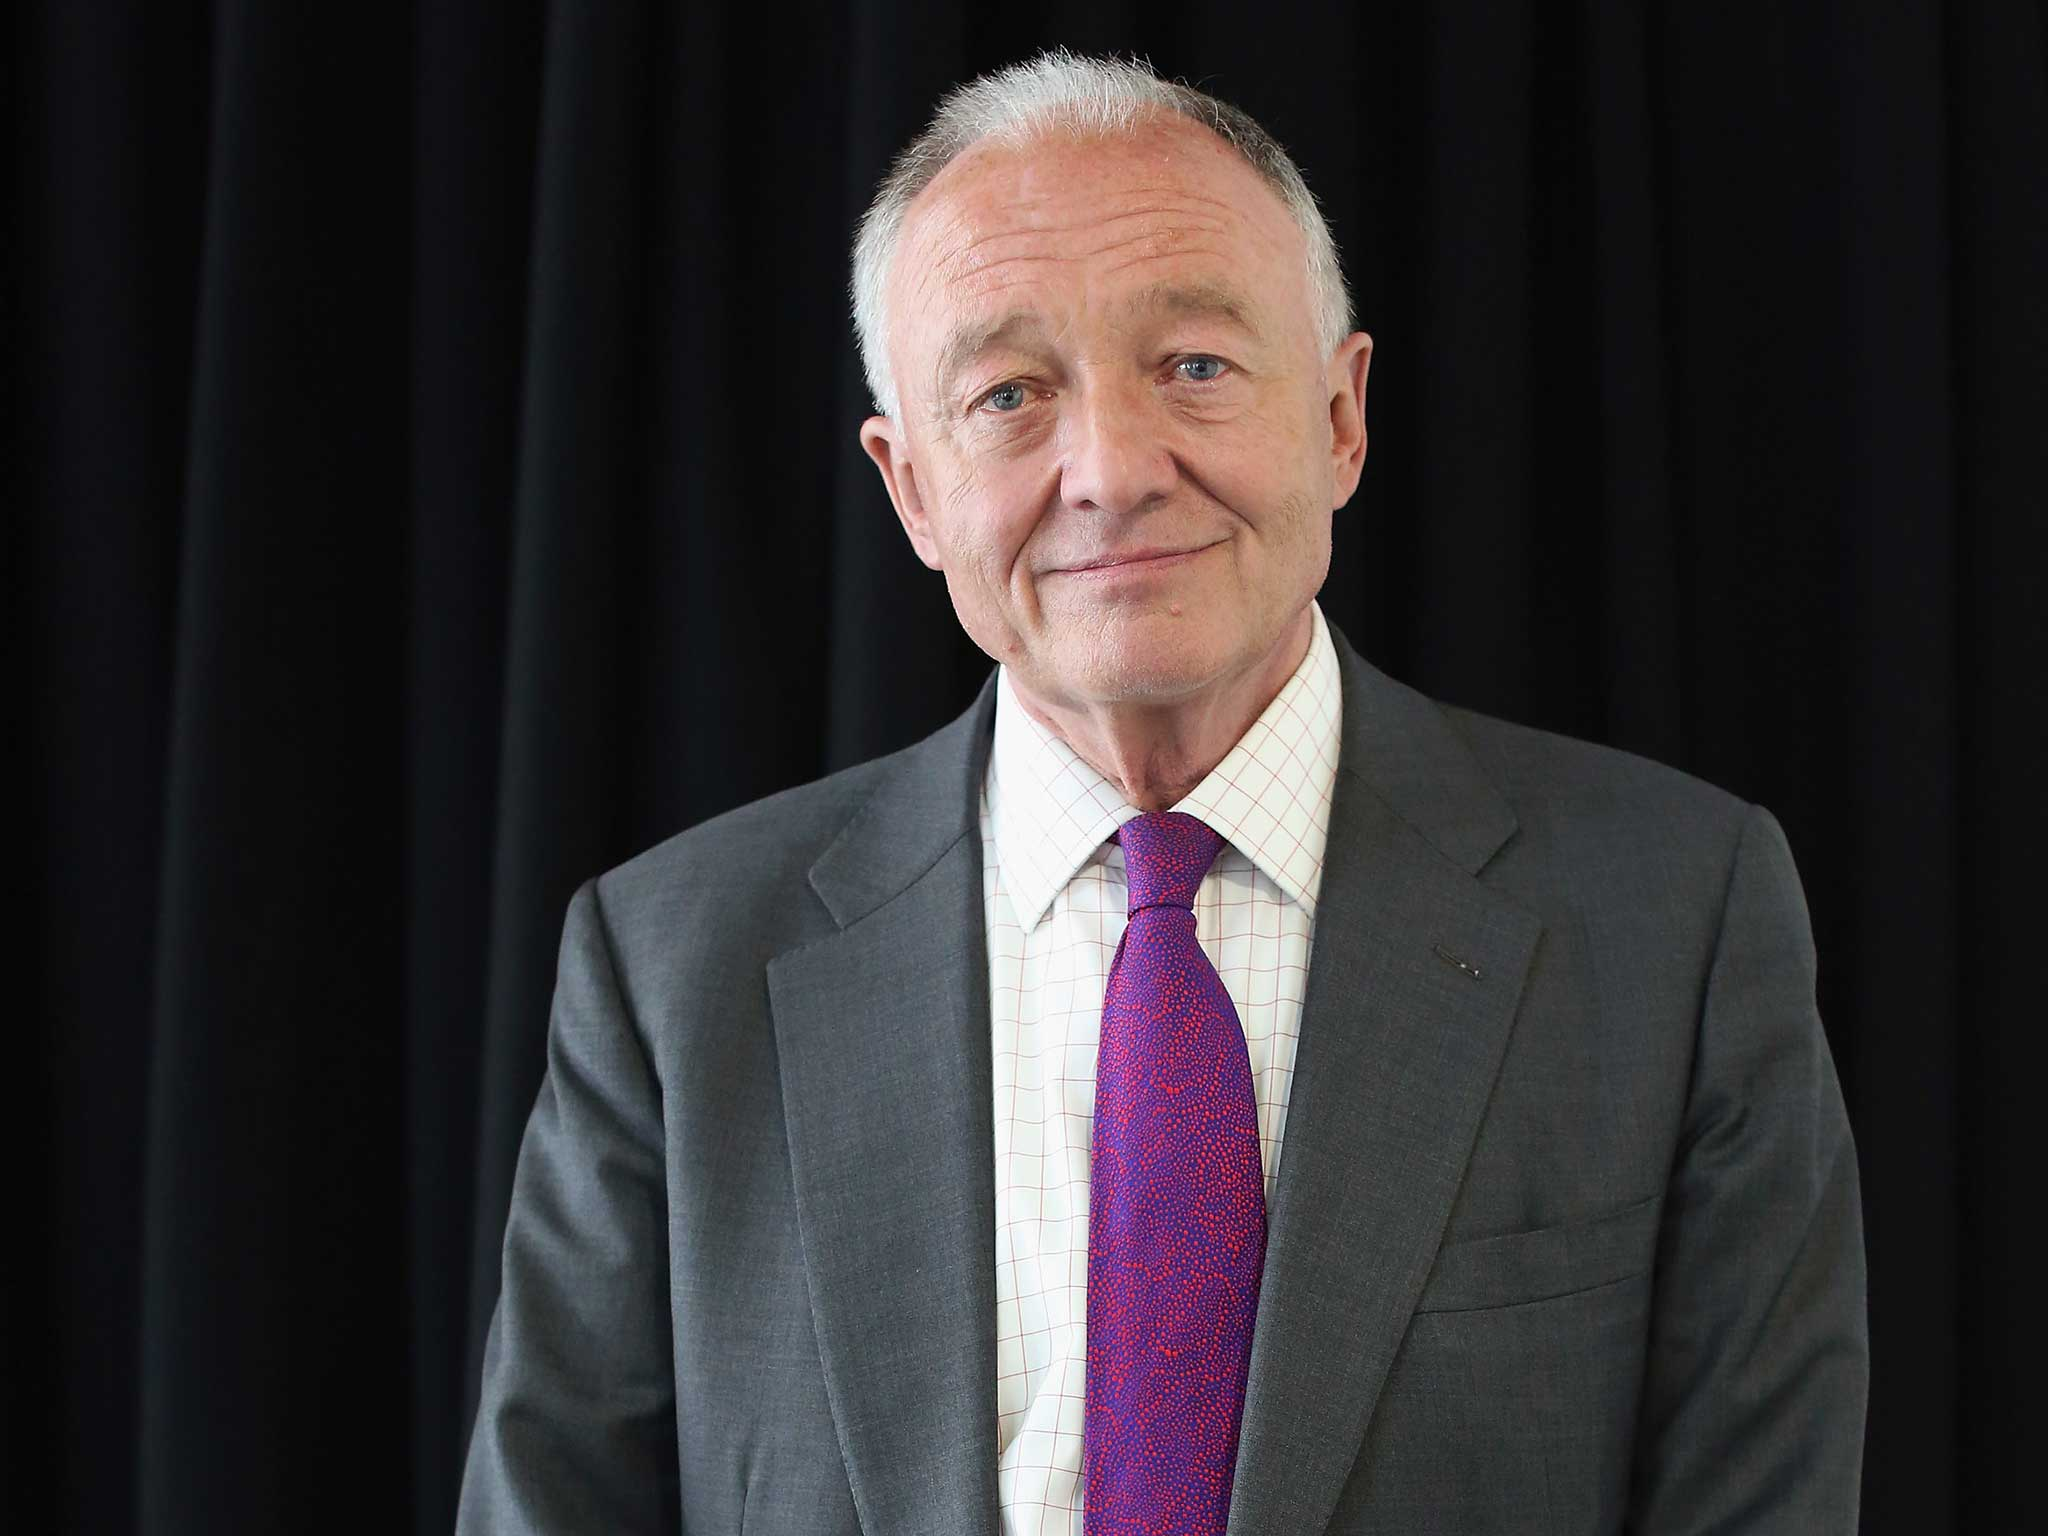 Ken Livingstone says creation of Israel was a 'great catastrophe' in TV interview